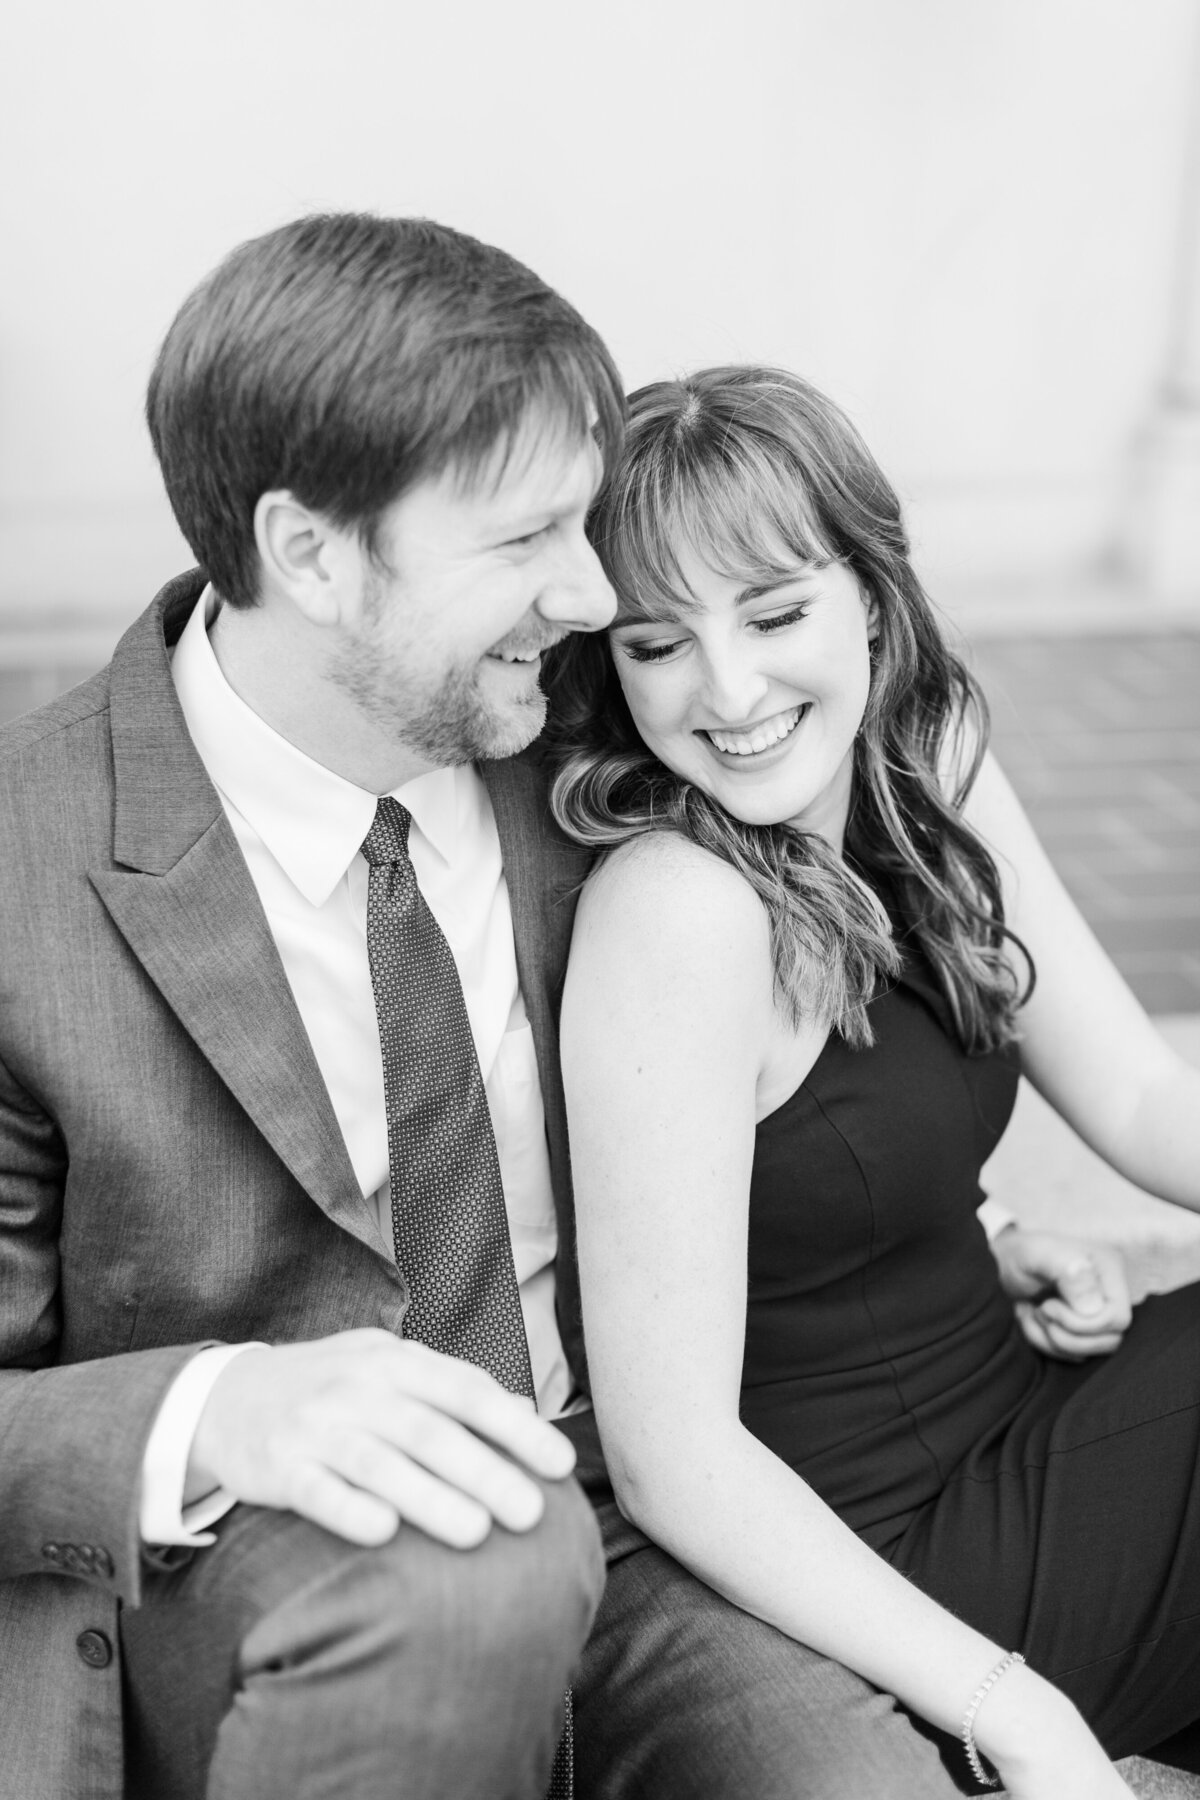 Renee Lorio Photography South Louisiana Wedding Engagement Light Airy Portrait Photographer Photos Southern Clean Colorful167778